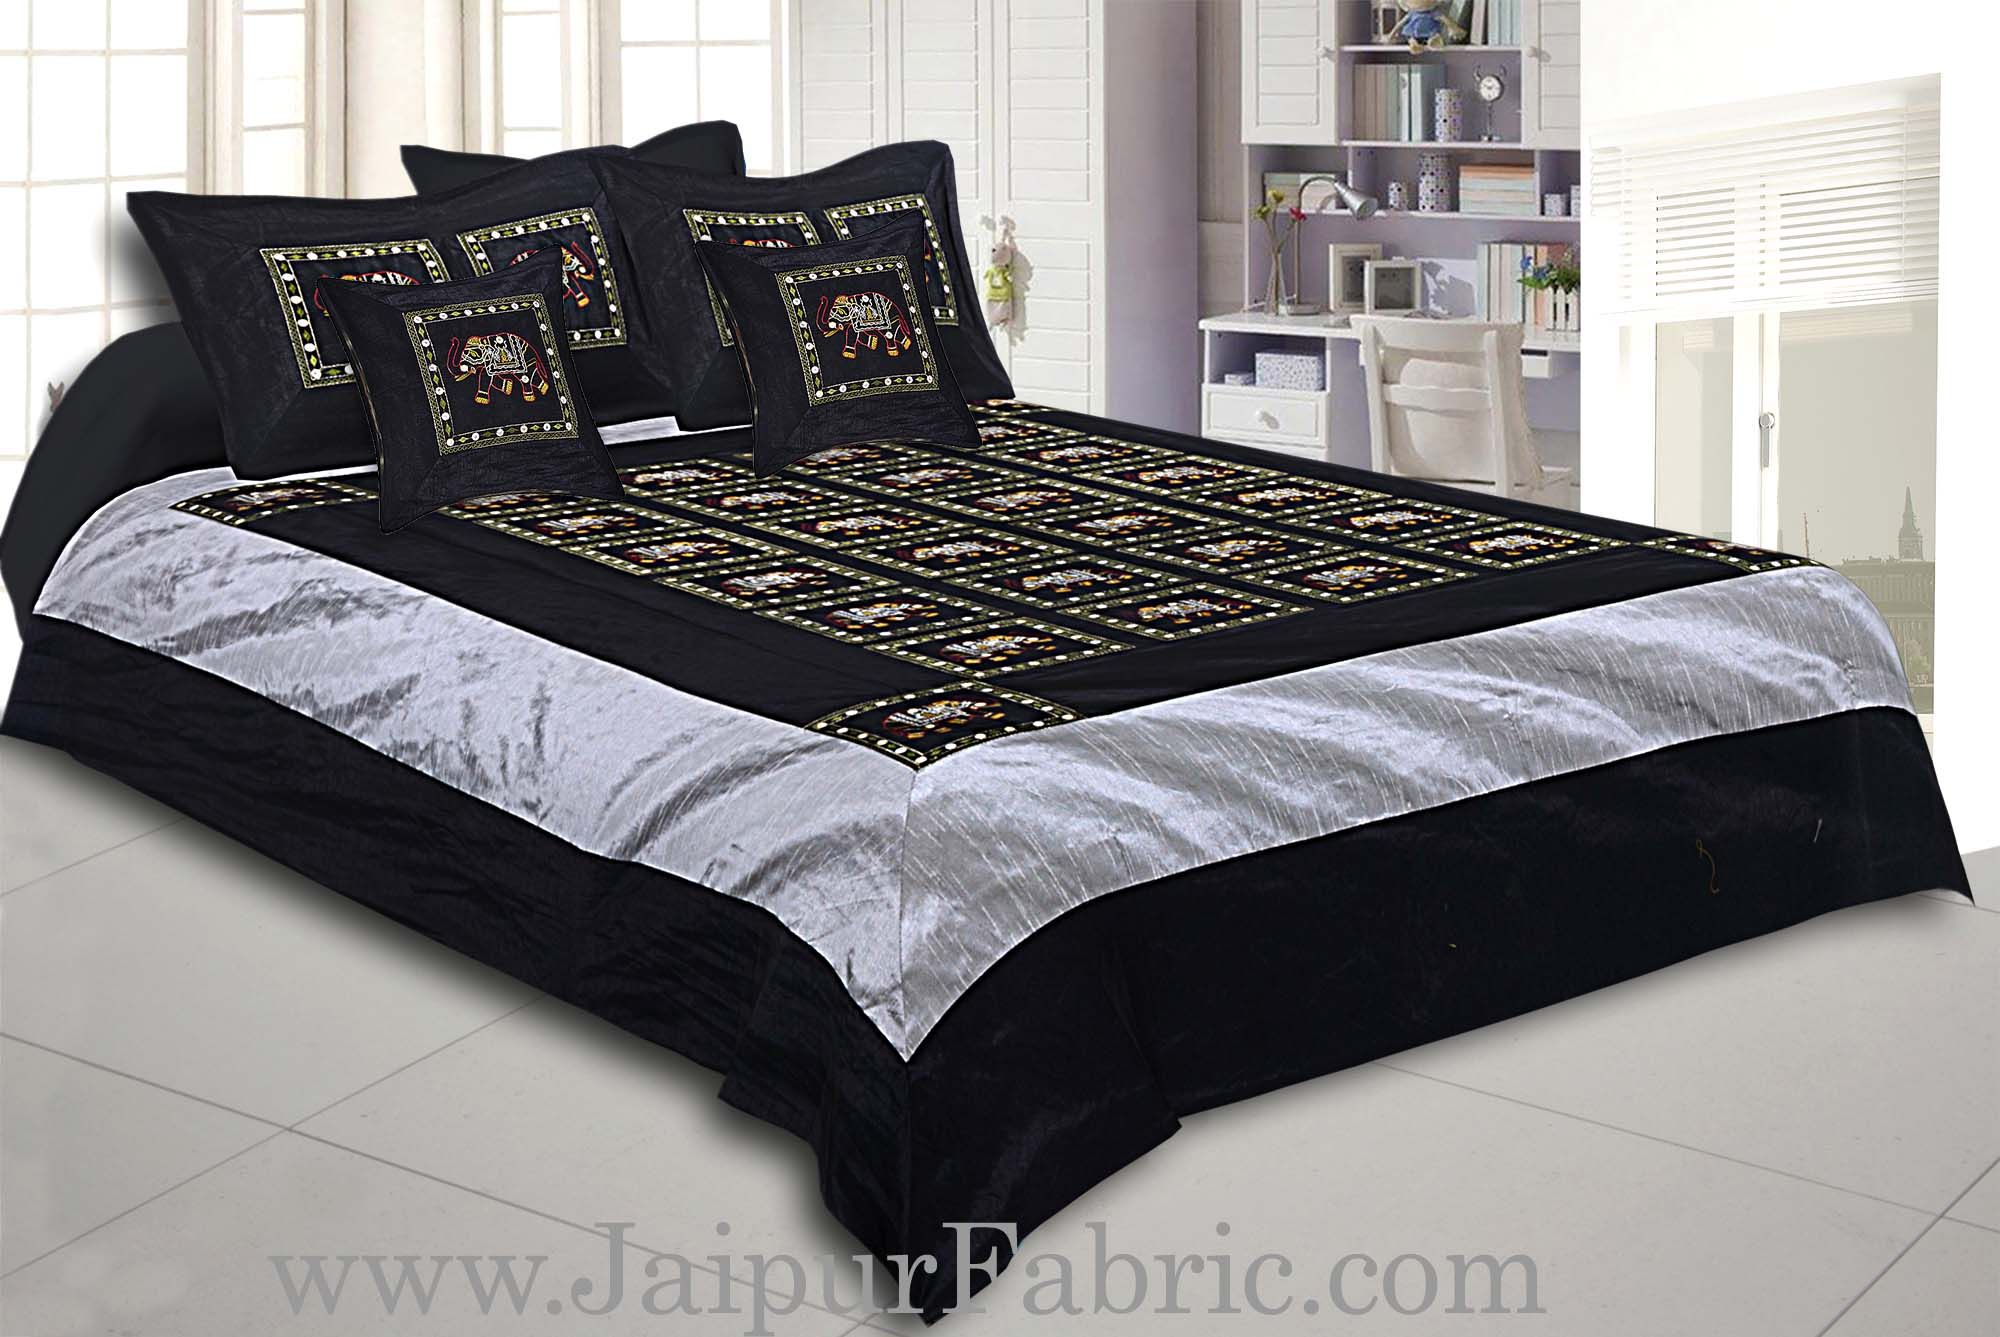 Black Elephant Zari Embroidered and Mirror Work Silk Double Bed Sheet